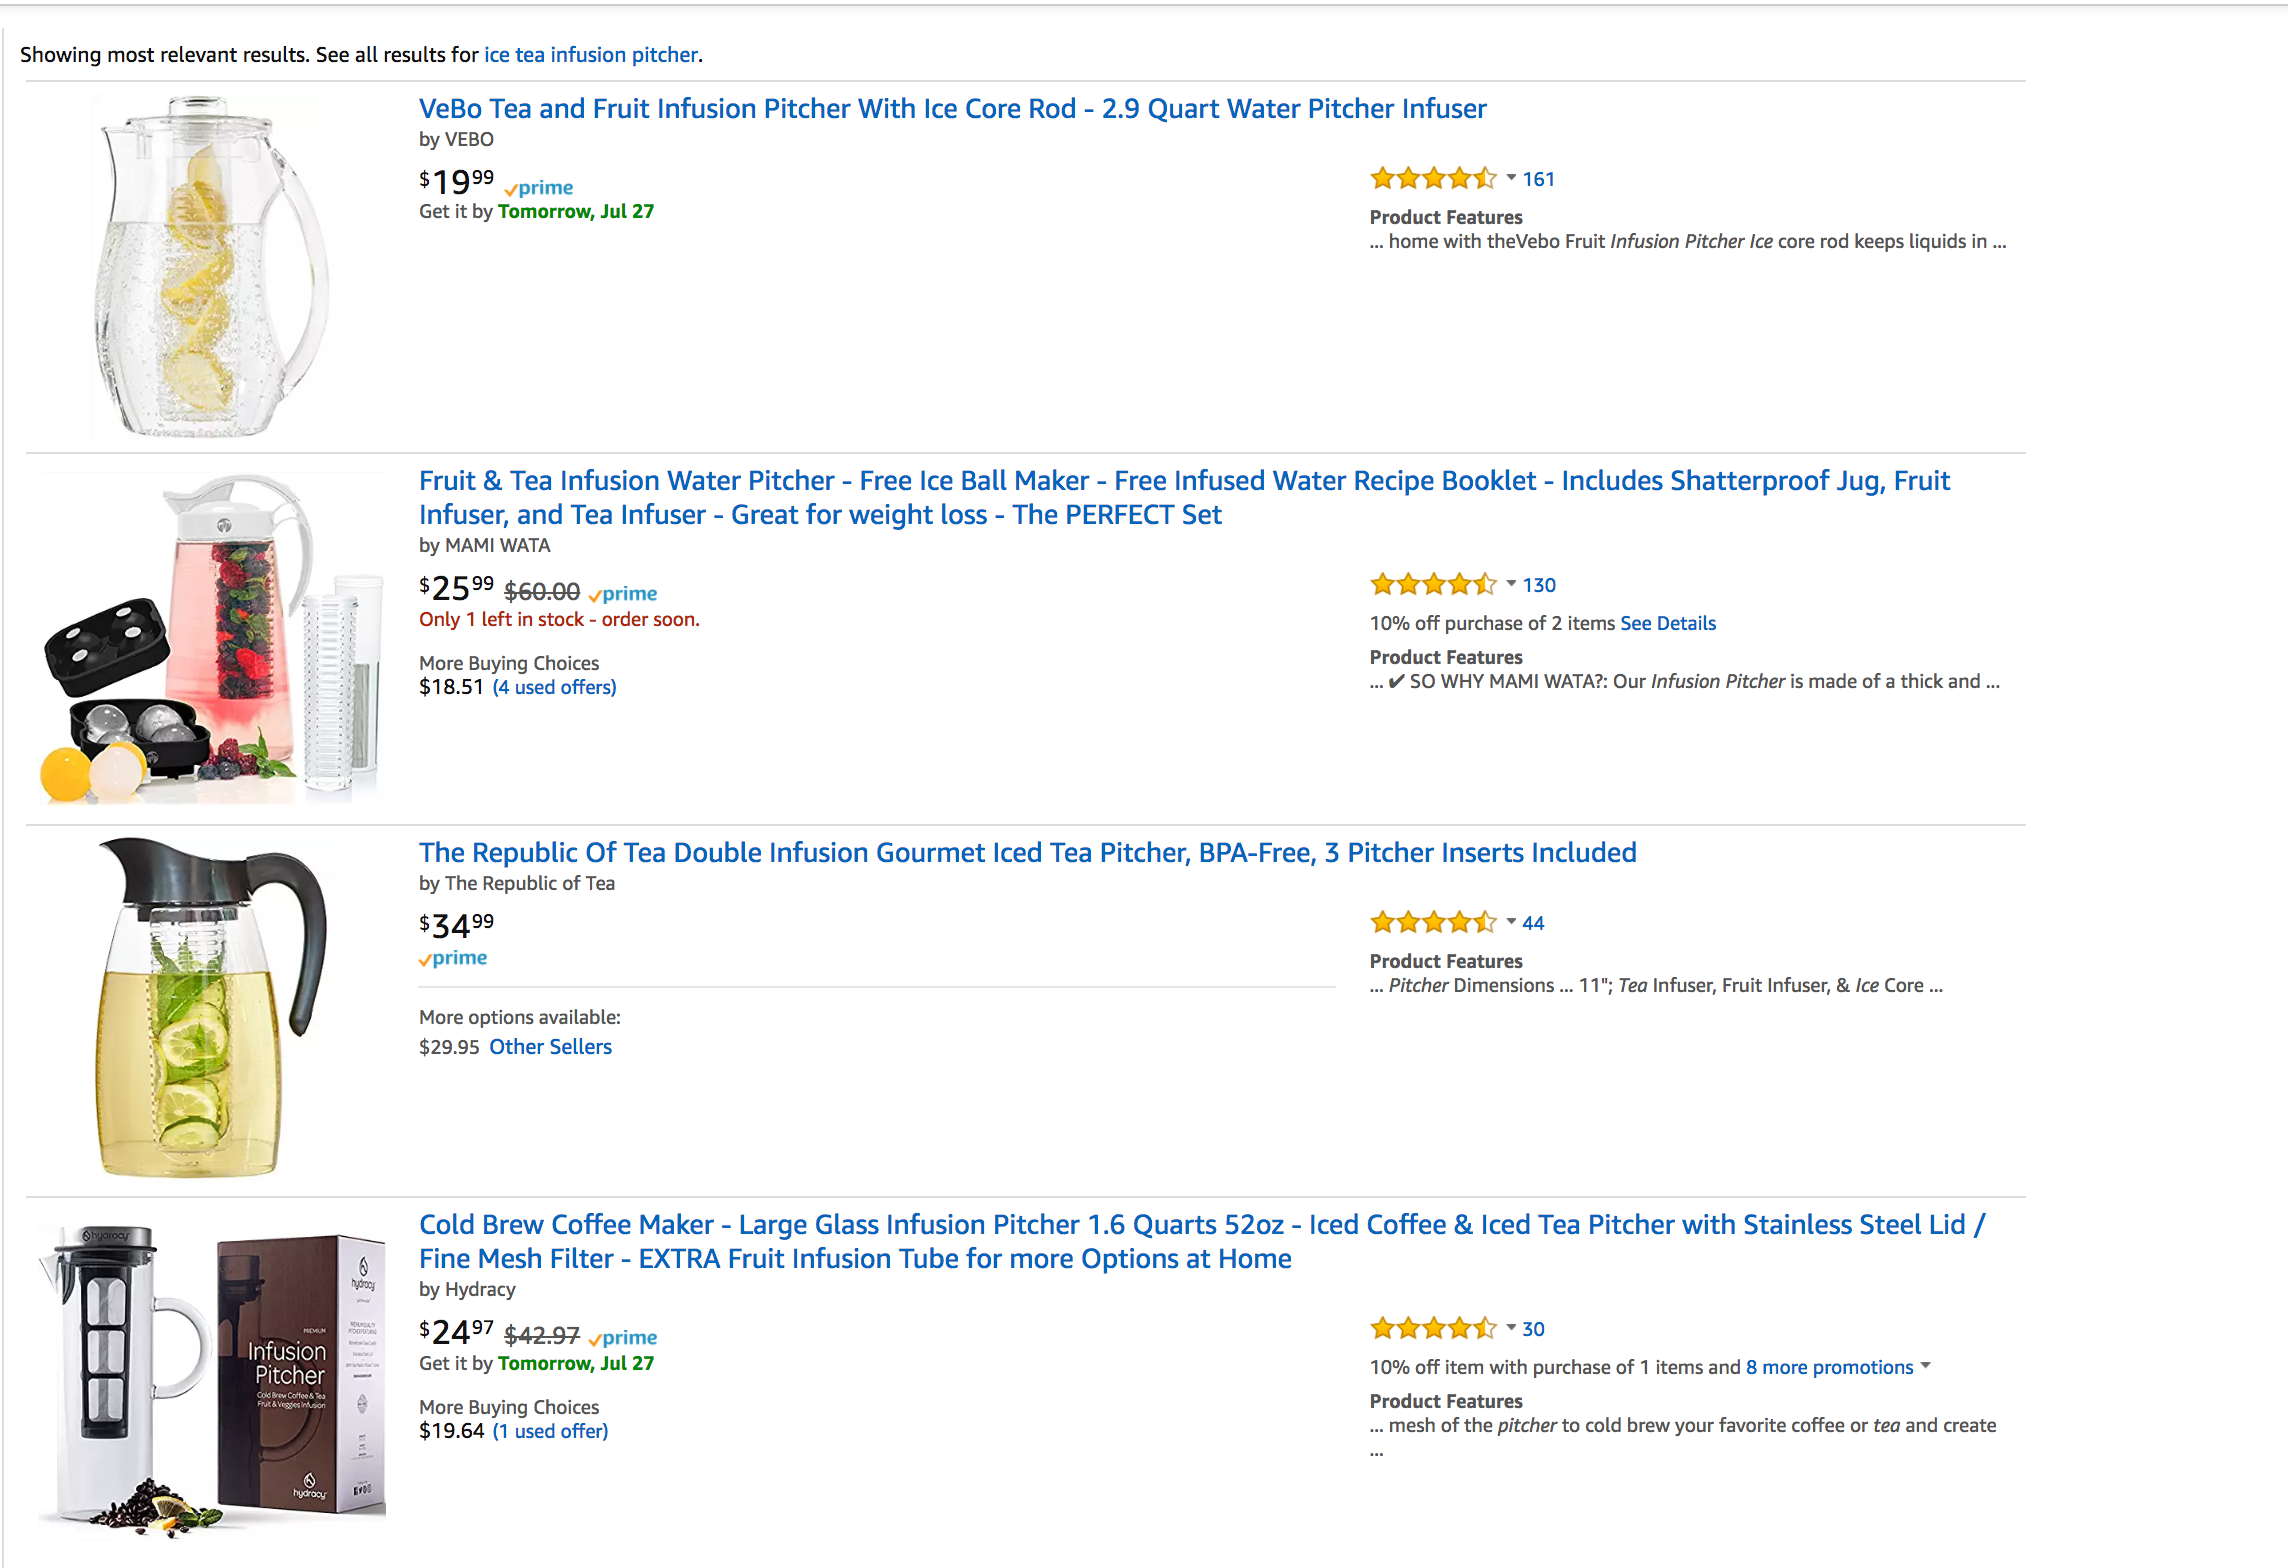 See Amazon's A9 search algorithm in action